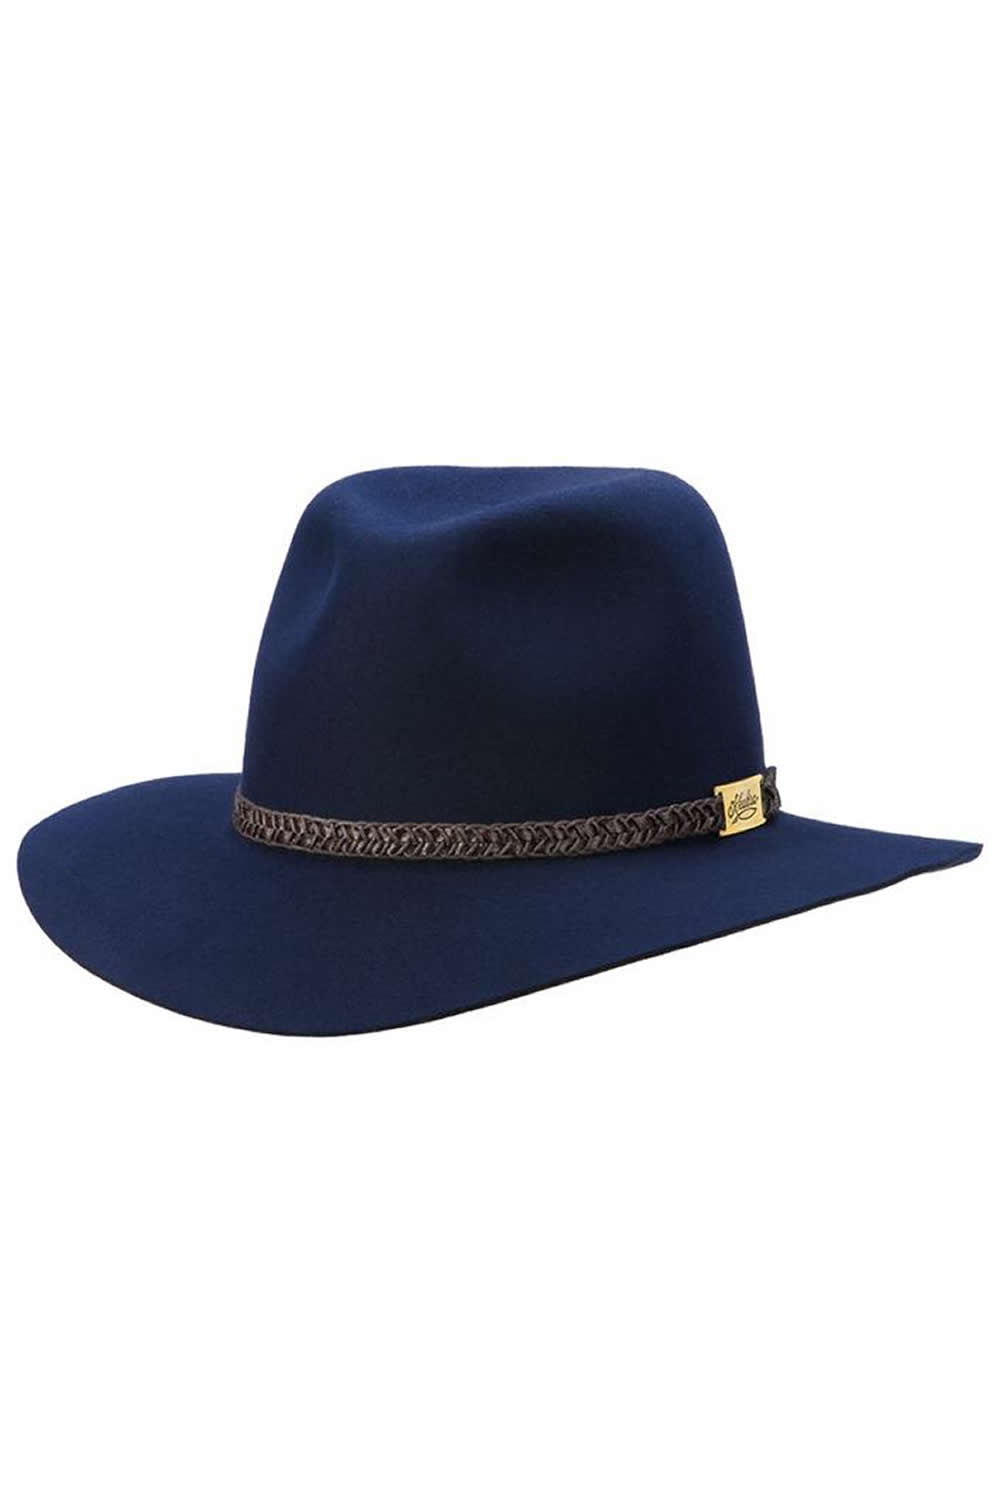 Akubra Avalon Felt Hat